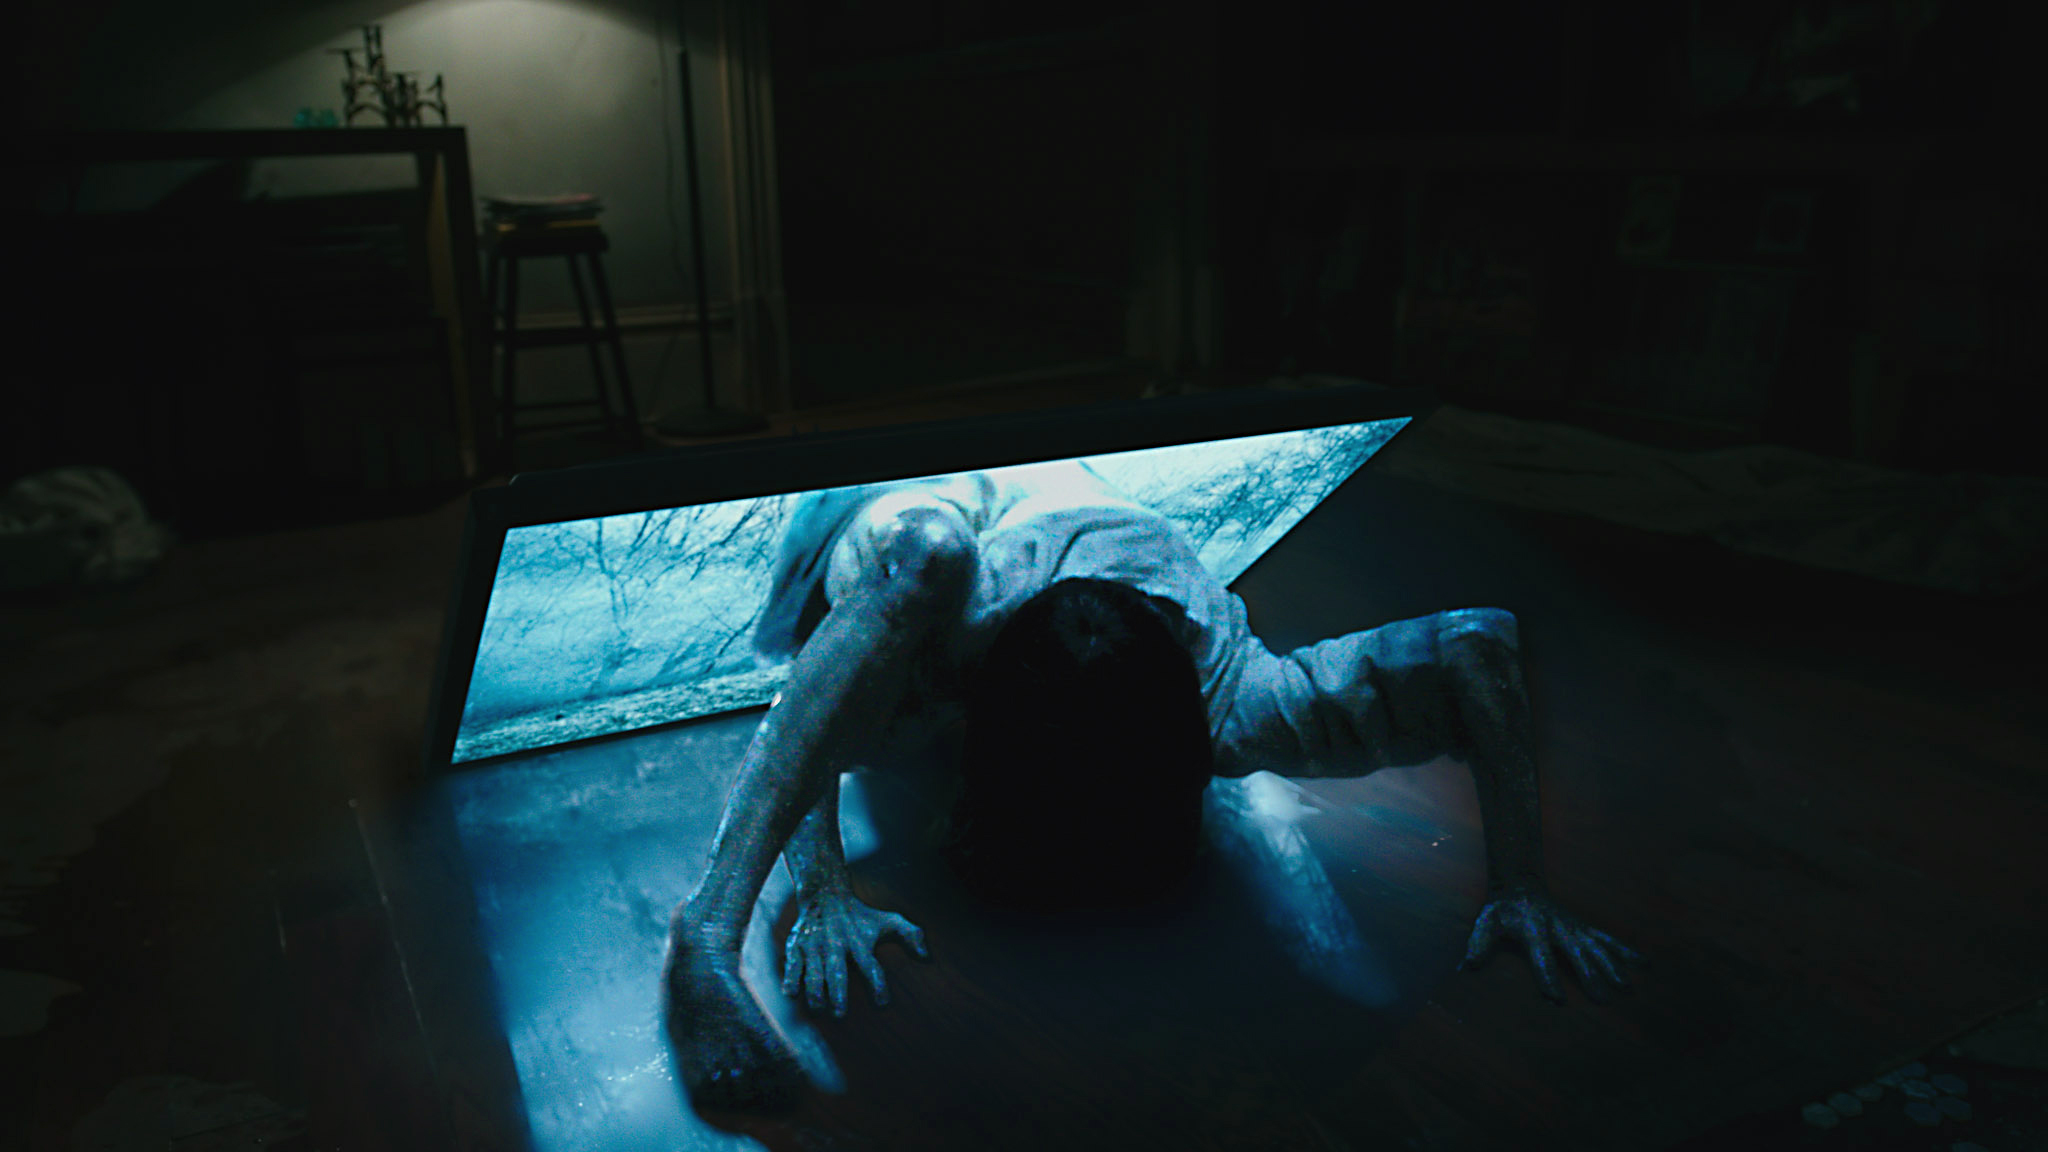 Samara (Bonnie Morgan) emerges from a flatscreen tv in Rings (2017)